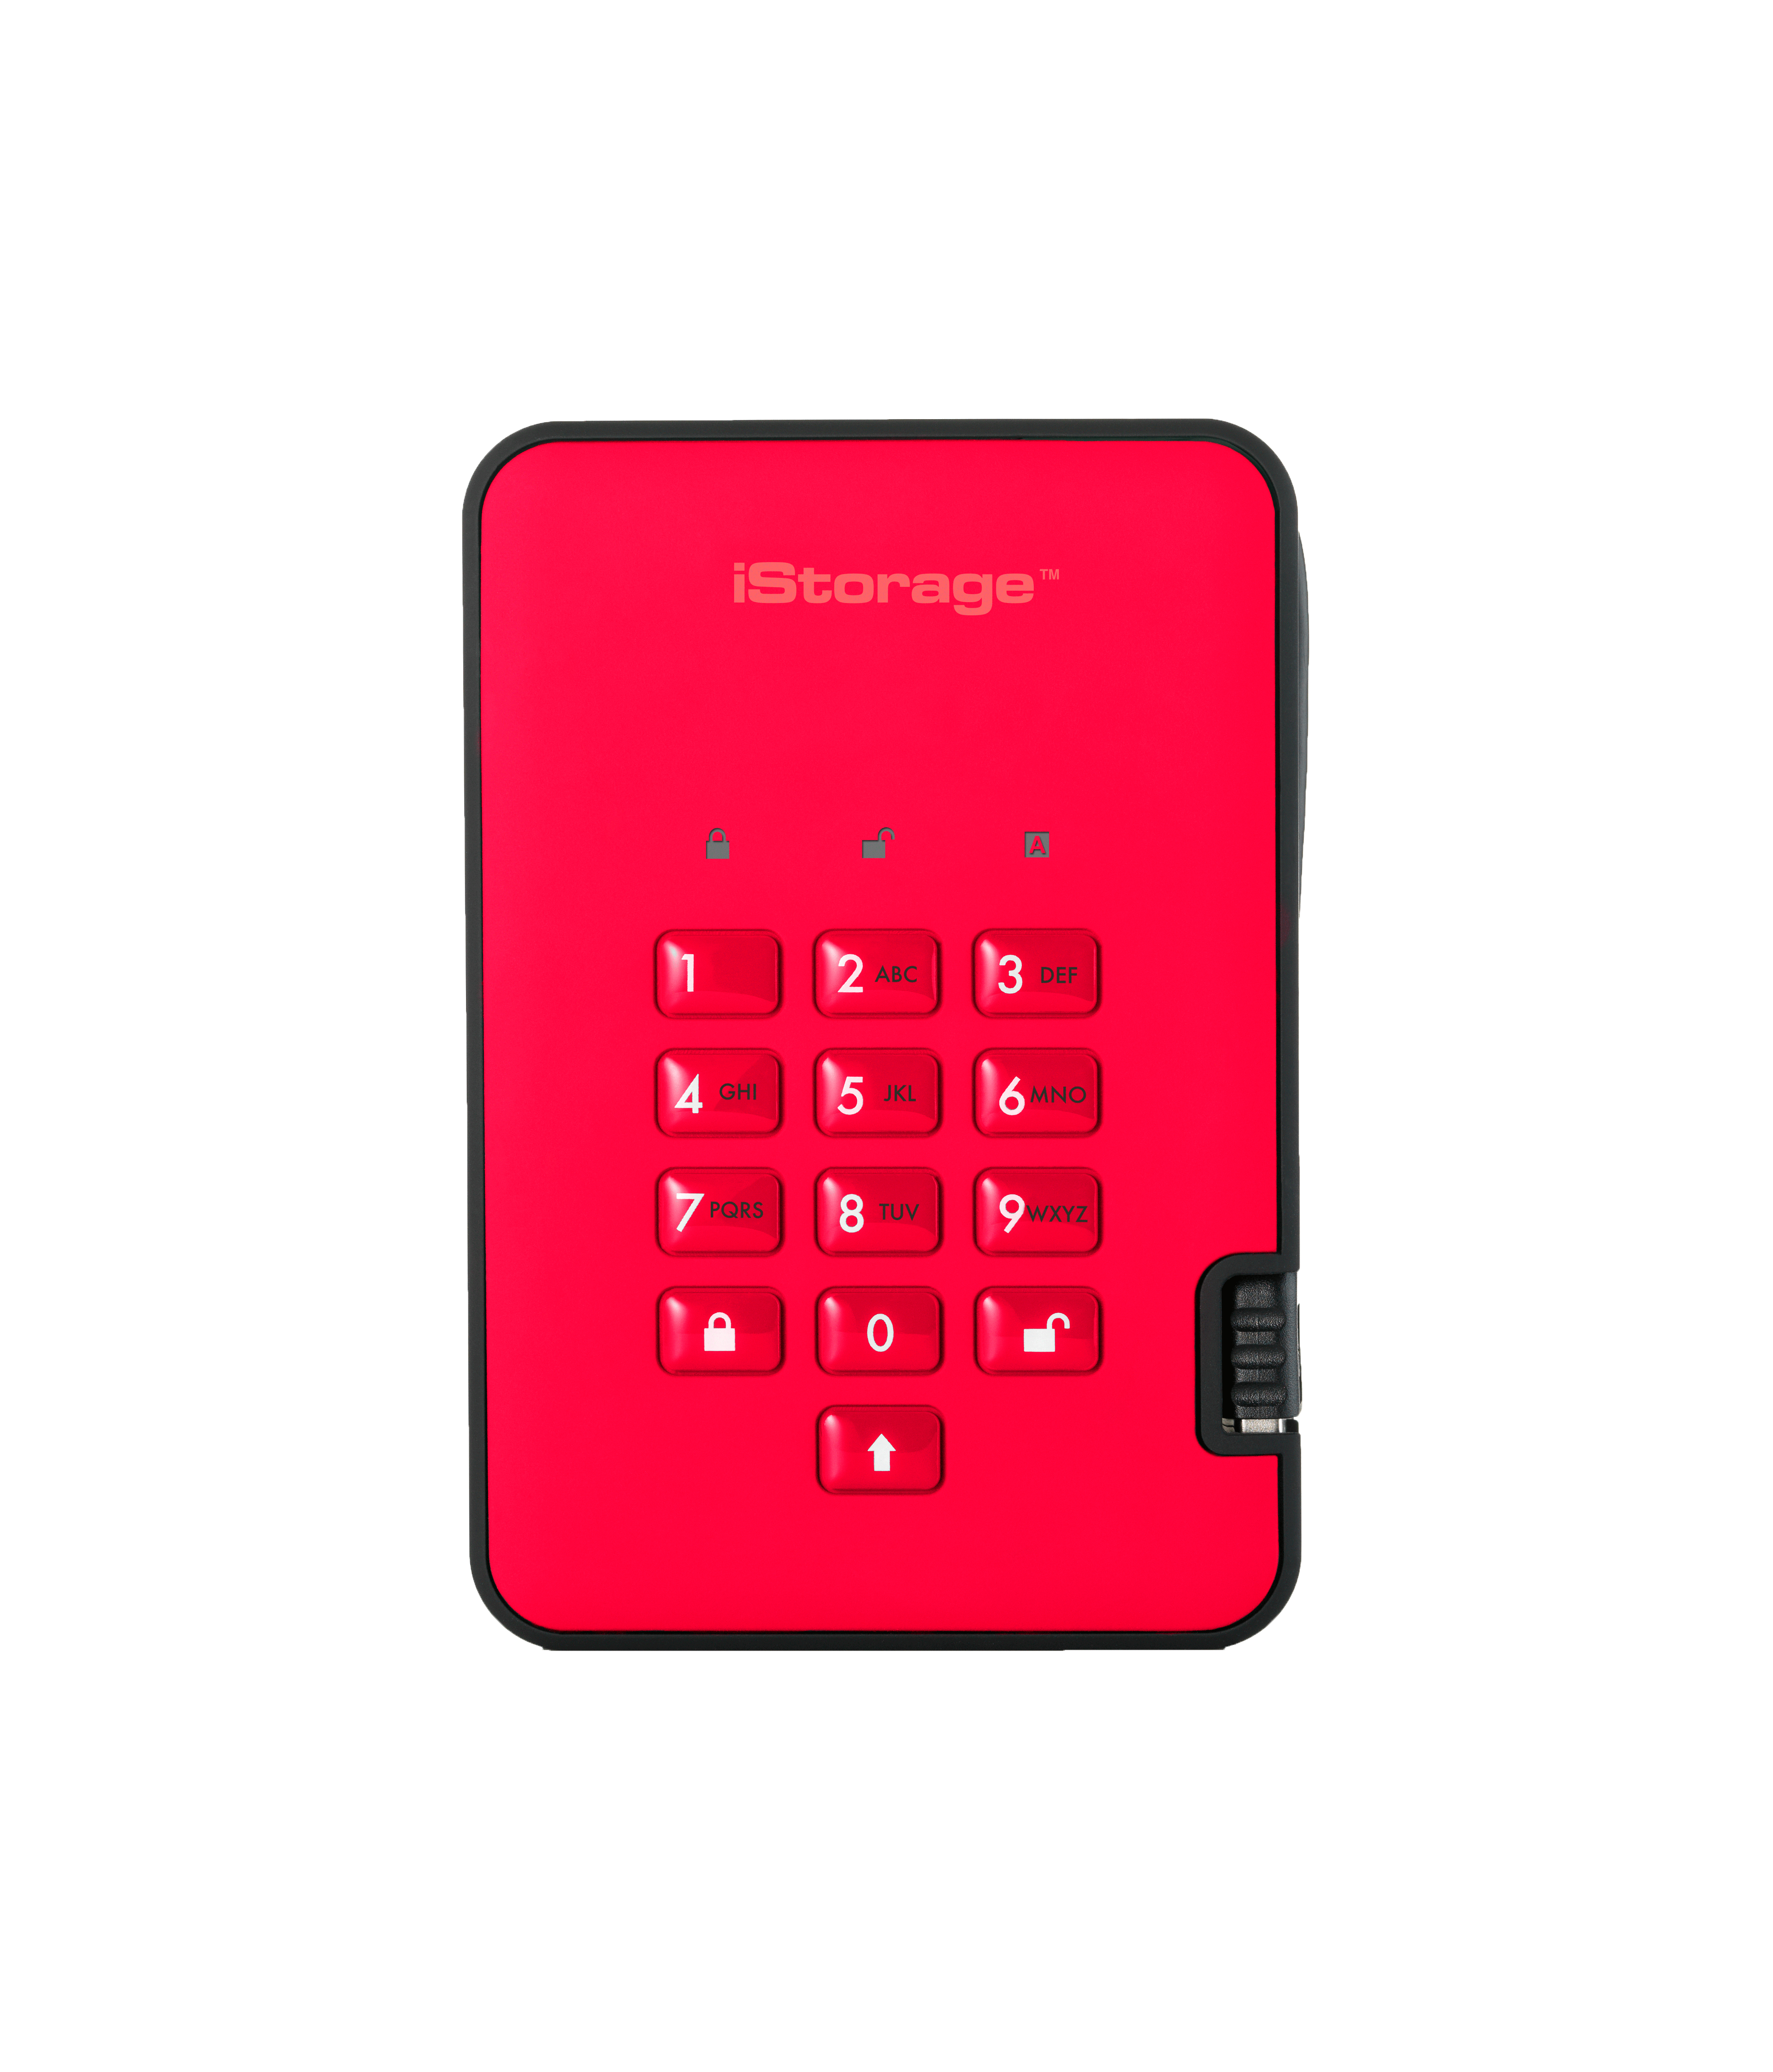 IS-DA2-256-2000-R iStorage diskAshur 2 USB Type-A 3.1 (3.1 Gen 2) 2000GB Red external hard drive - Ent01